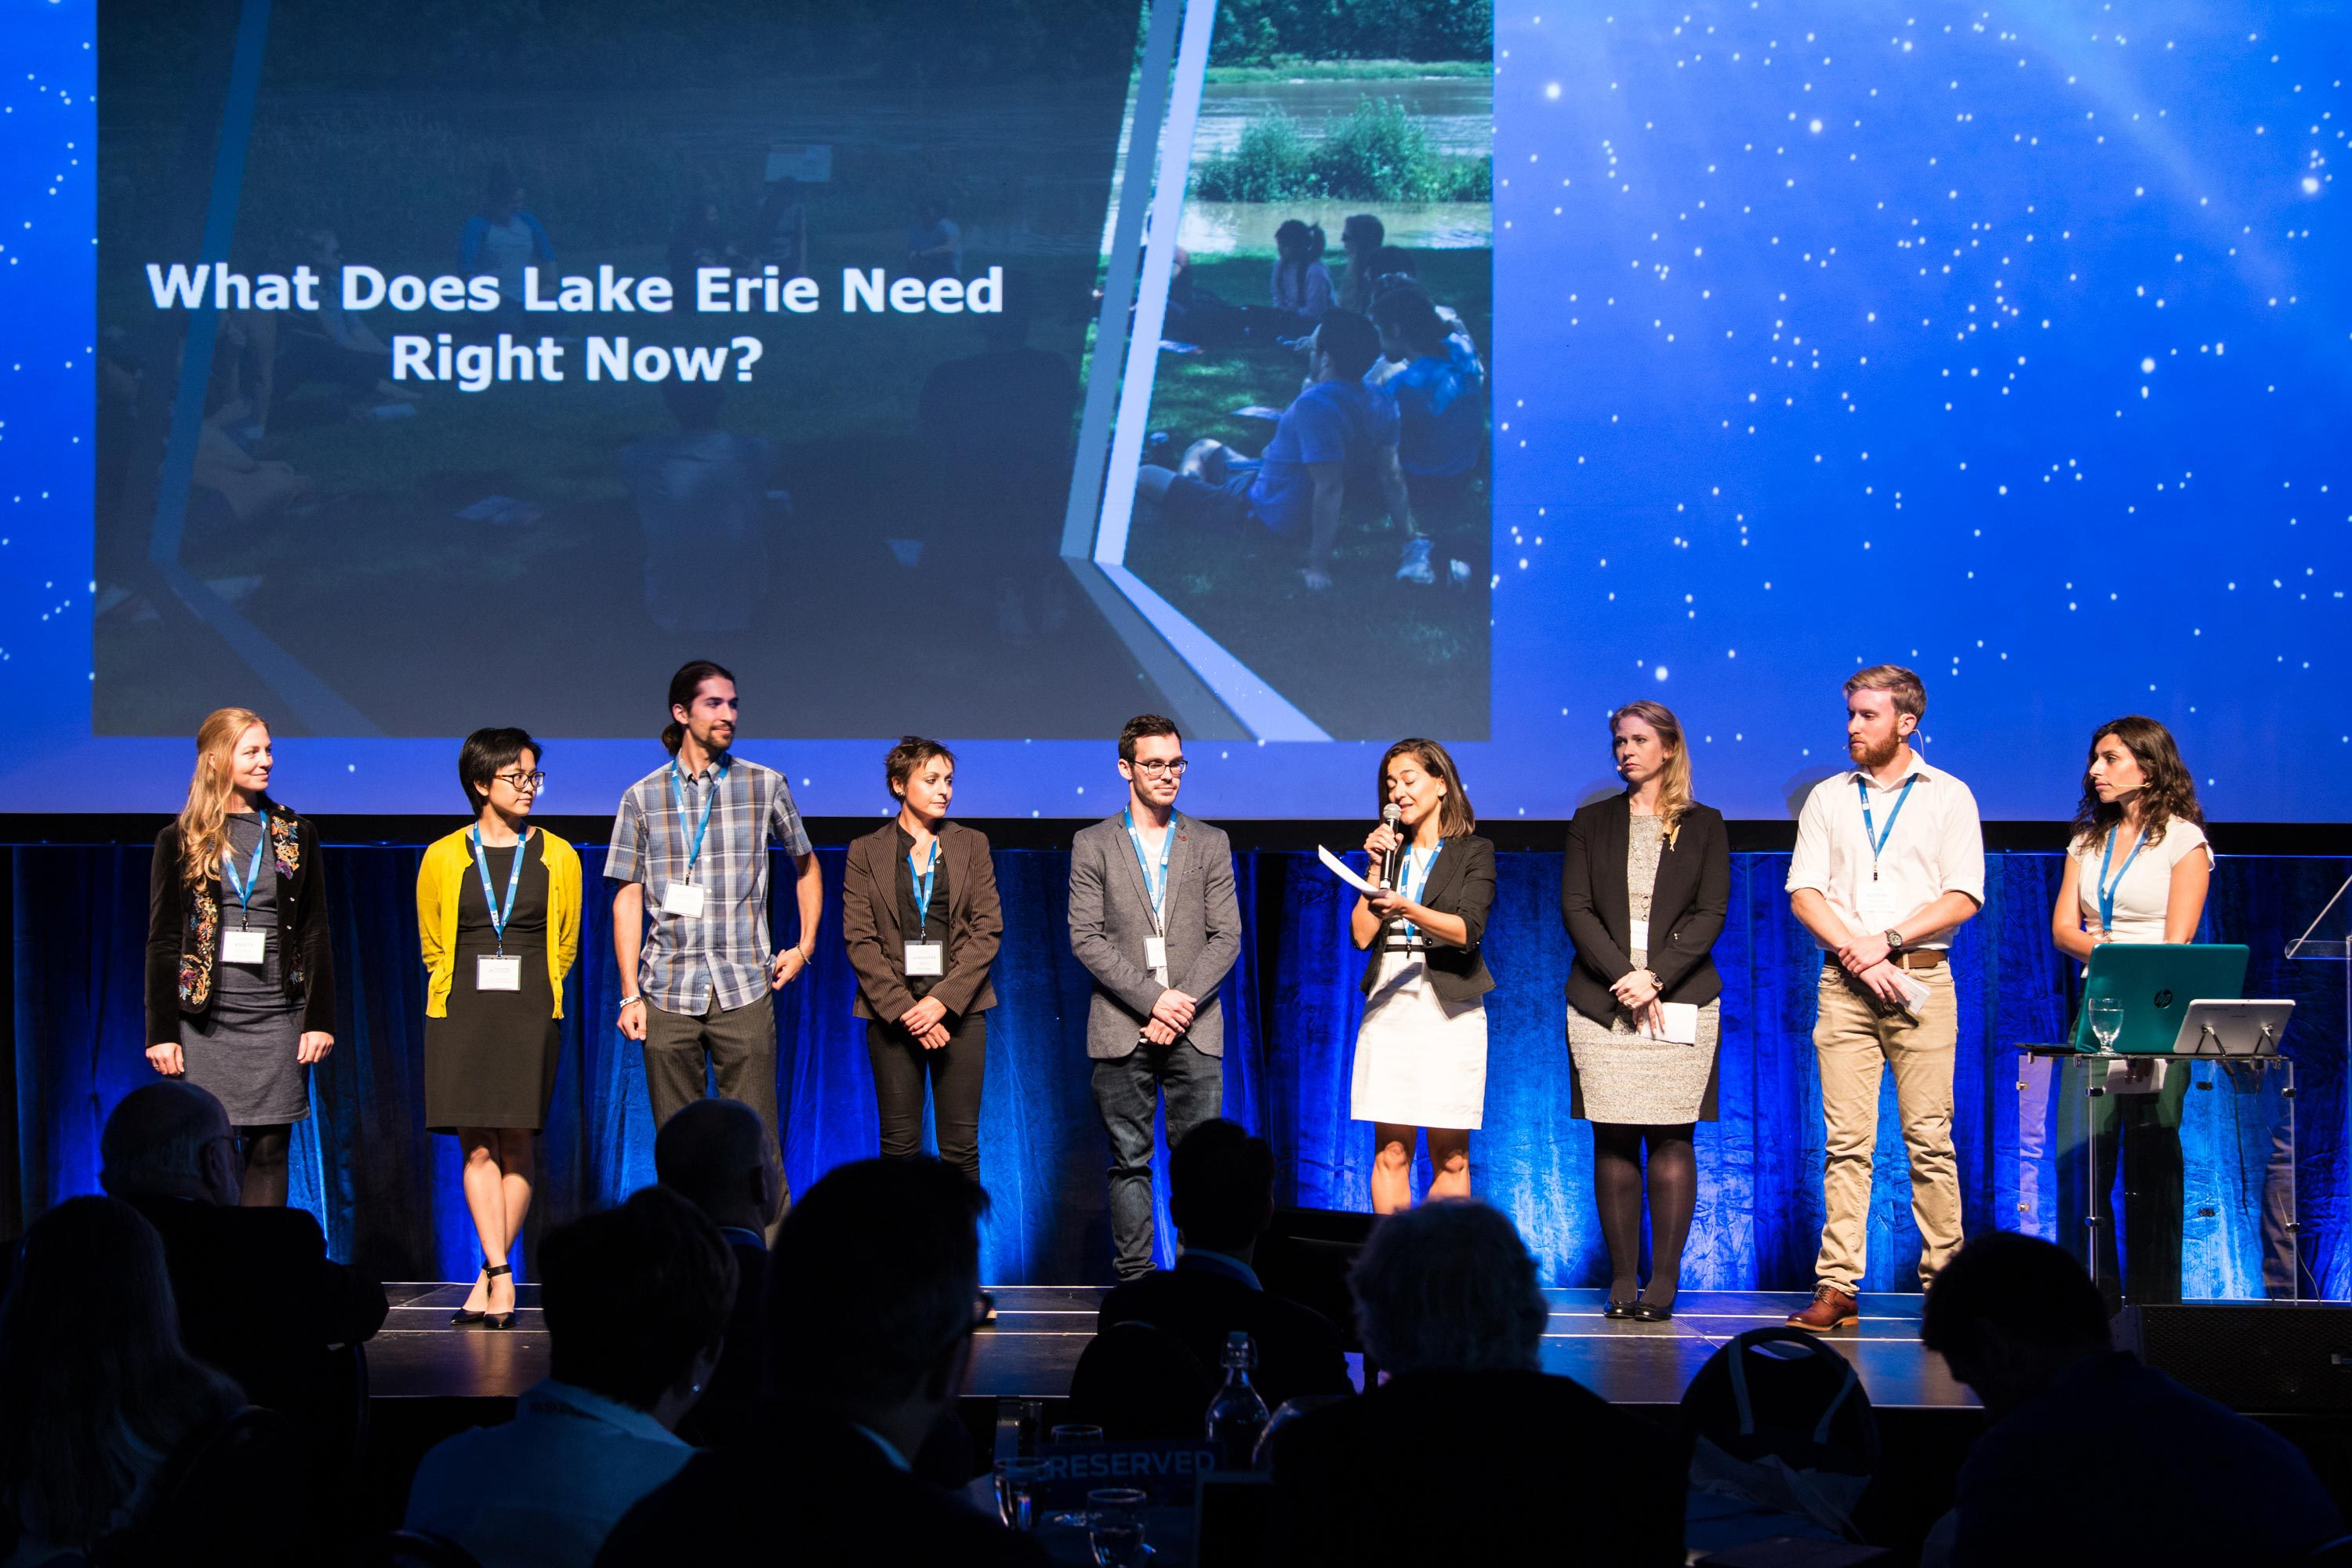 Members-of-the-2017-AquaHacking-Youth-Delegation-address-the-crowd-4_170914_193246